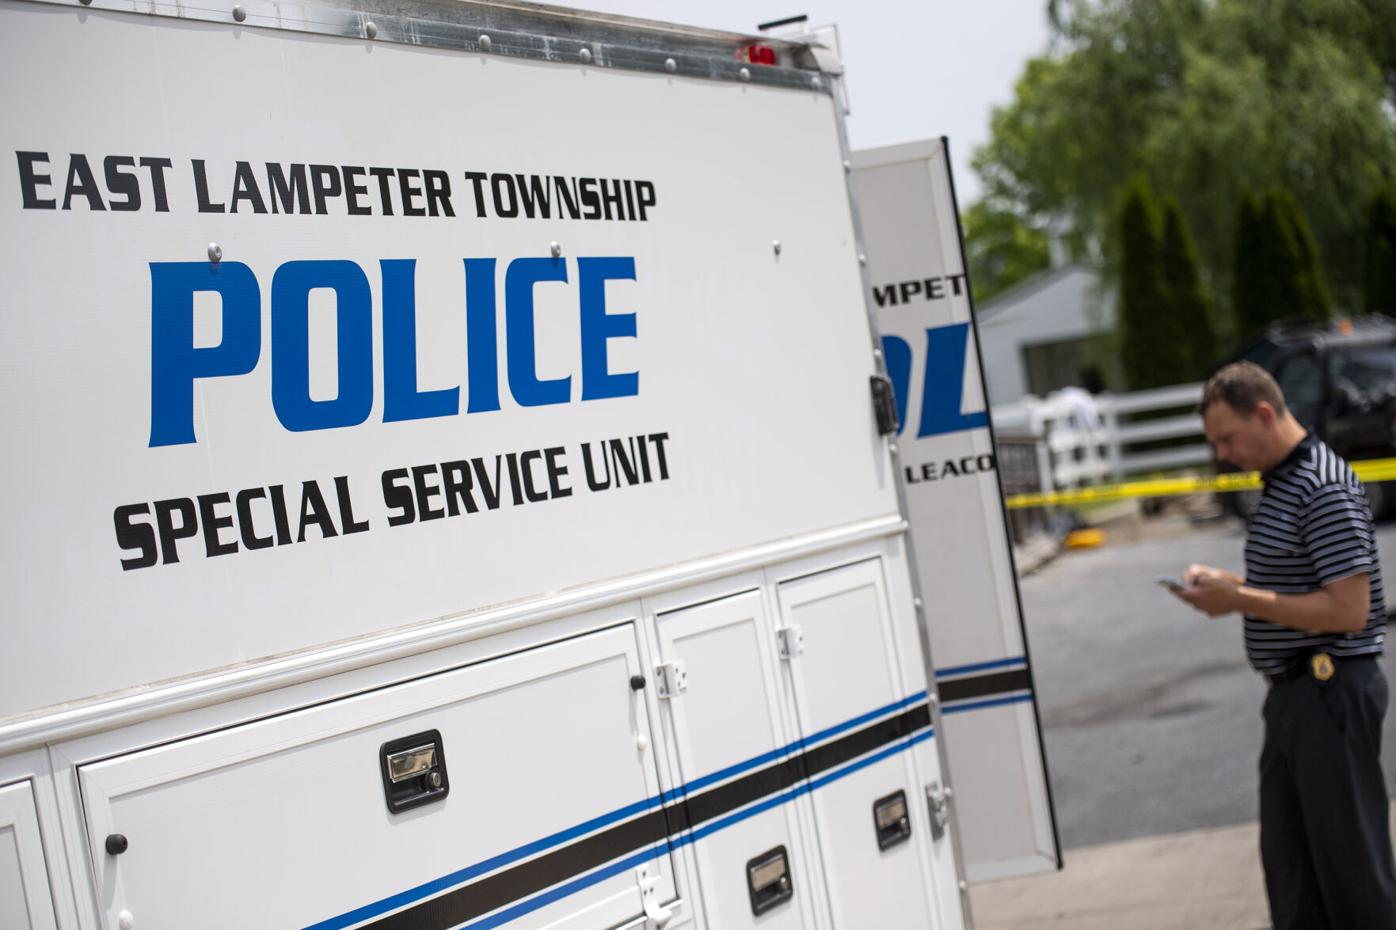 Human Remains found in East Lampeter Township-060921